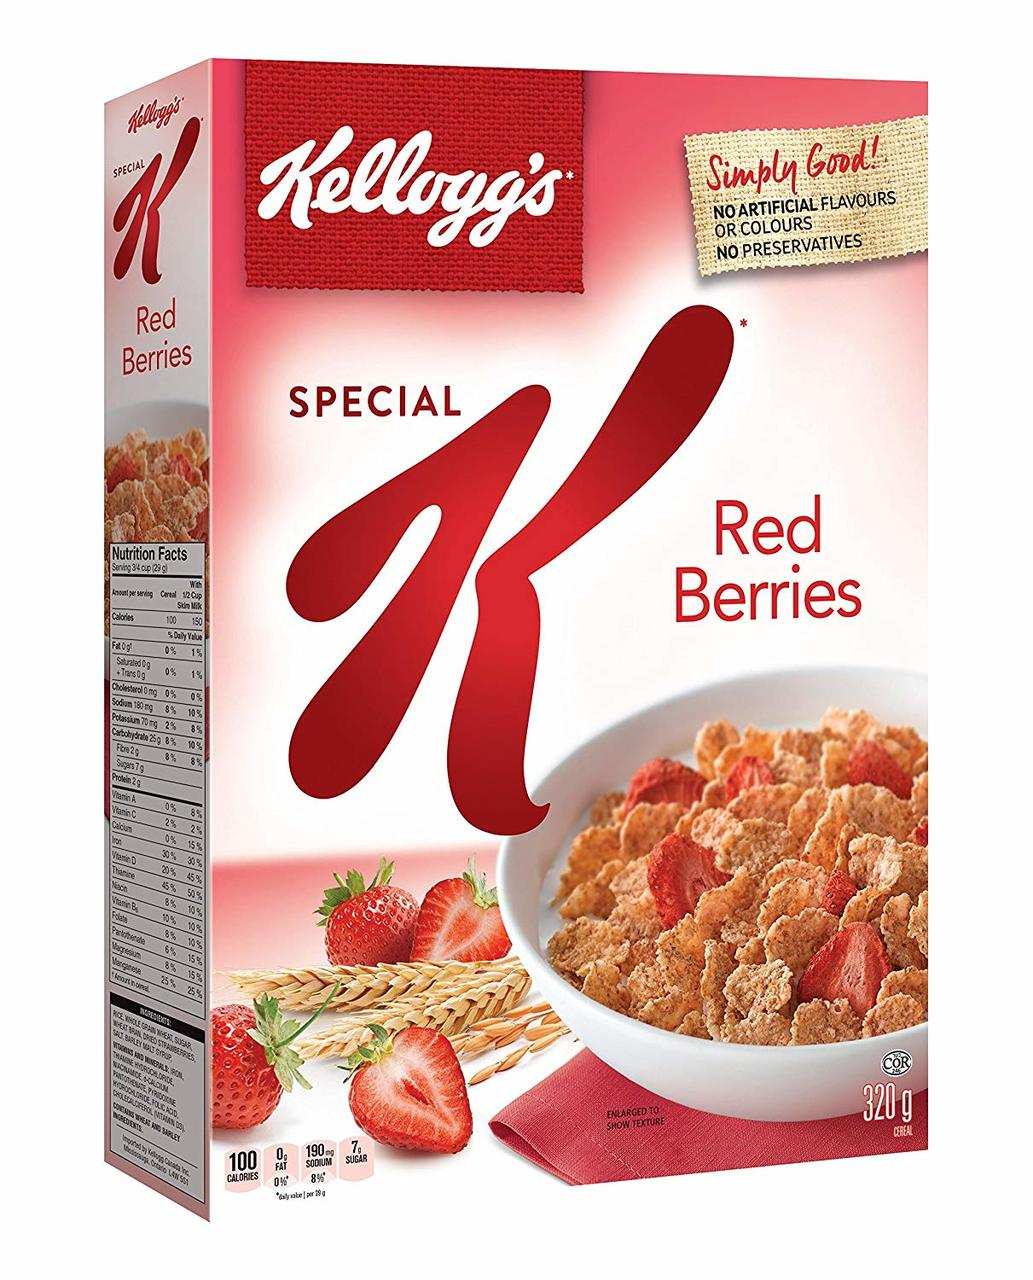 stm>Kellogg's Special K Red Berries 11.2oz